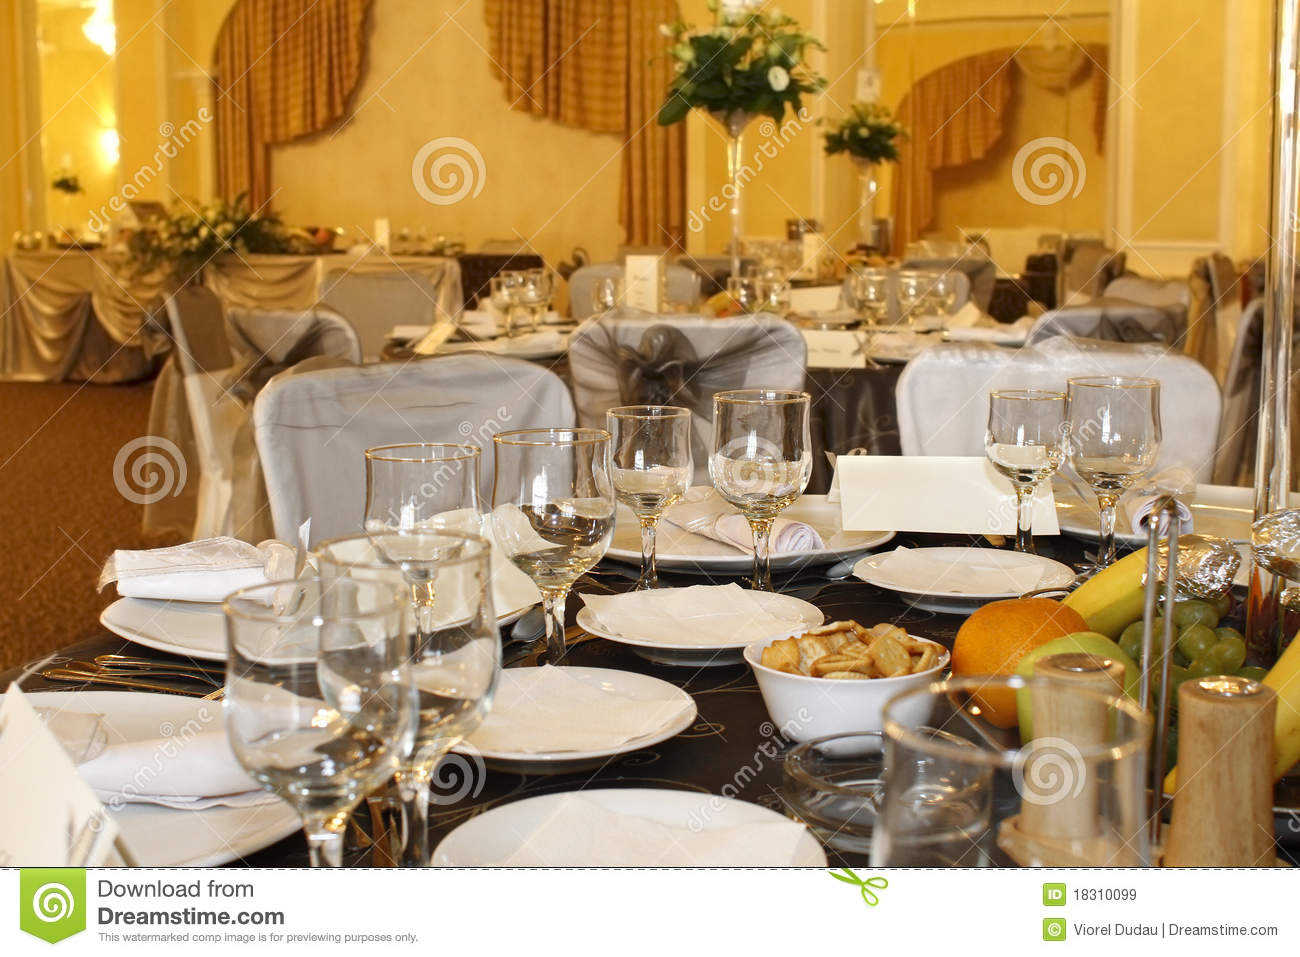 Party Decorations For Corporate Lunch Royalty Free Stock